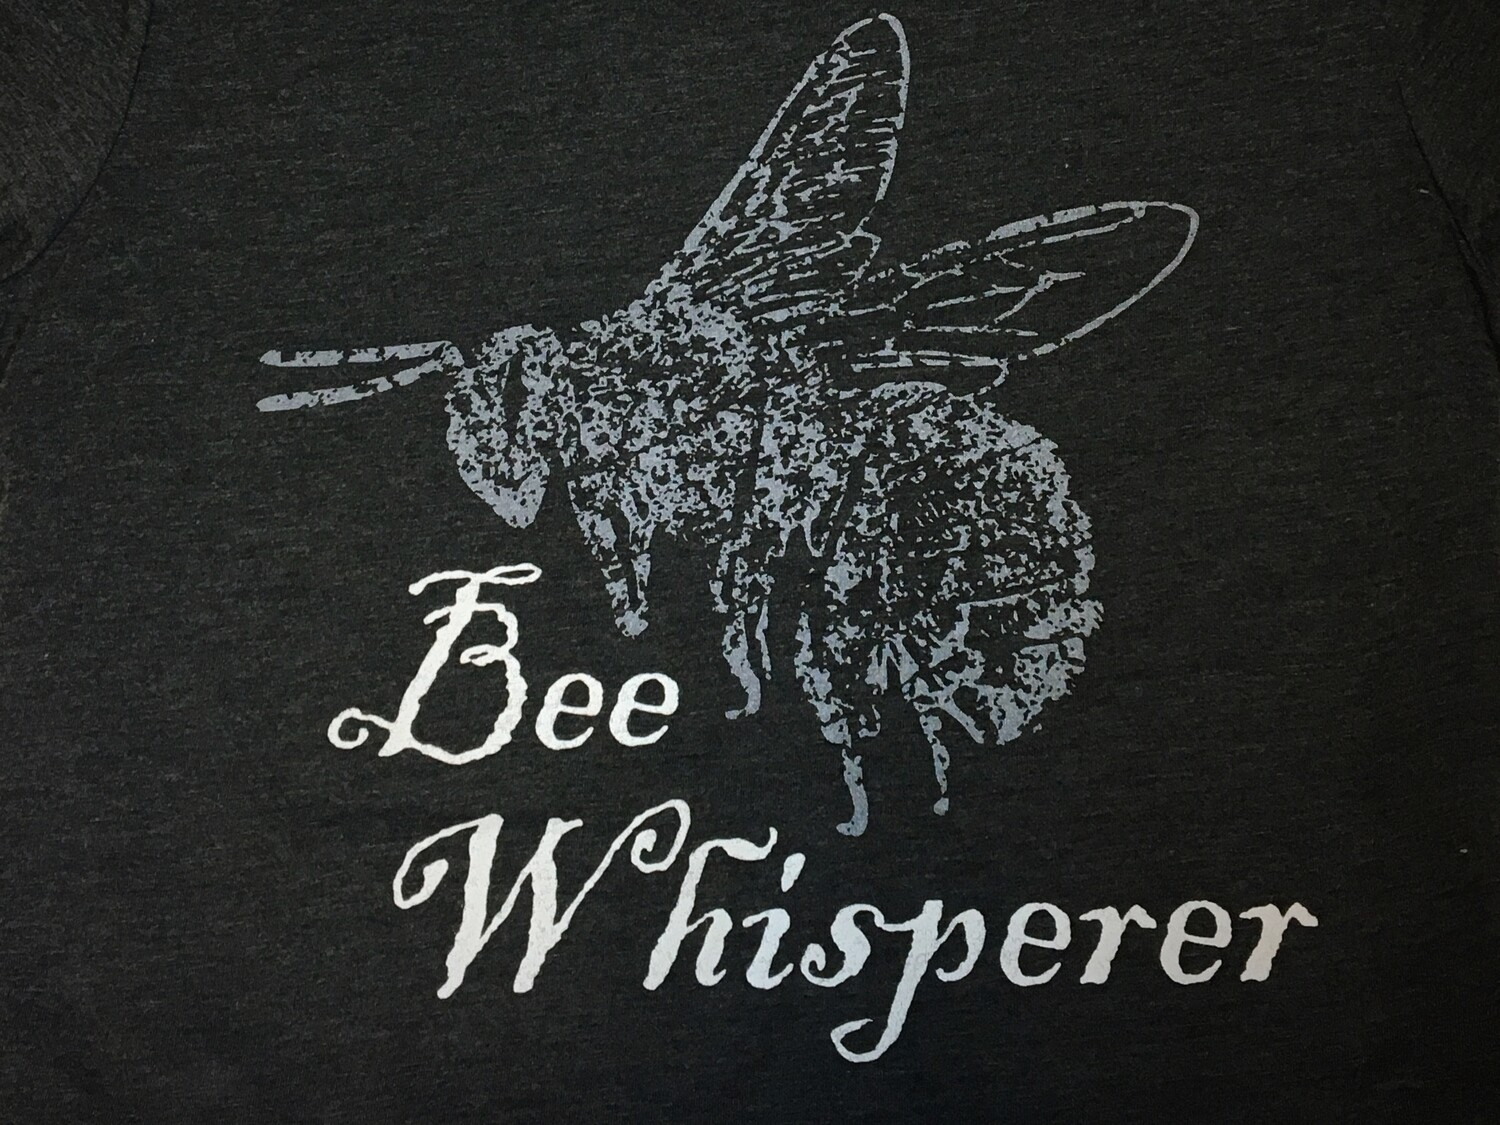 Bee Whisperer Soft T-Shirt